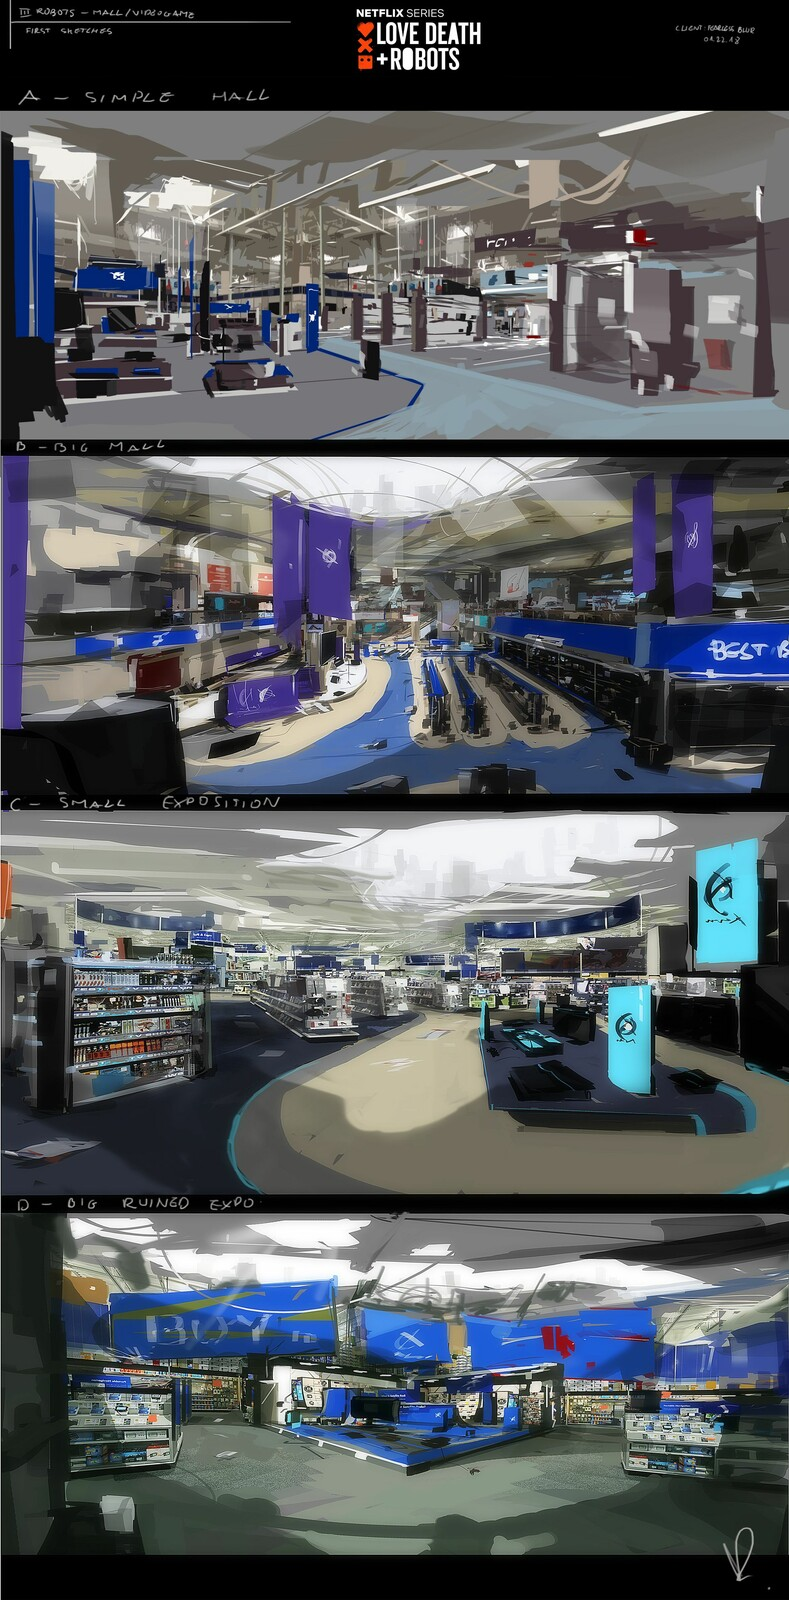 Mall alleys concepts sketches- early ideas